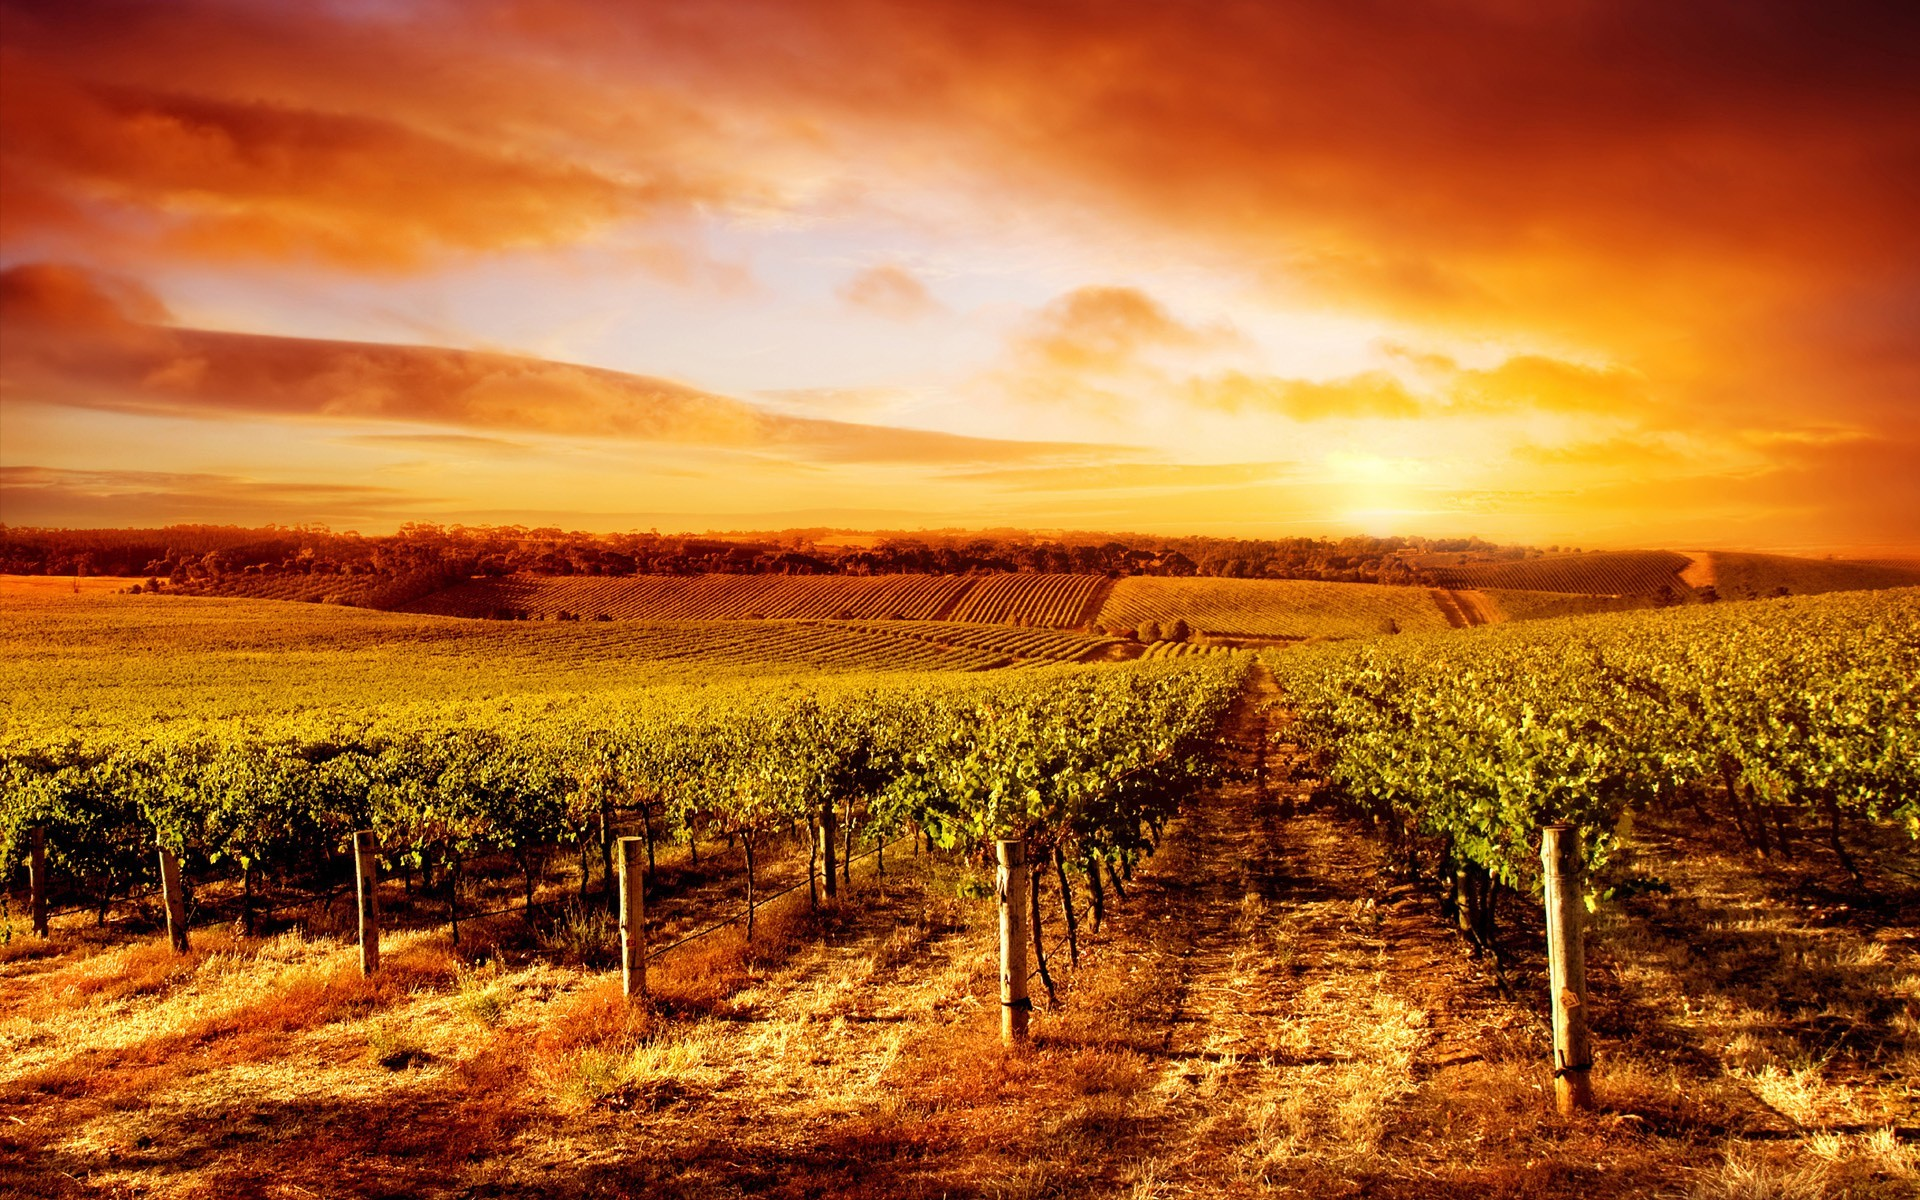 1920x1200 Vineyard HD Wallpaper | Background Image |  | ID:168613 - Wallpaper  Abyss